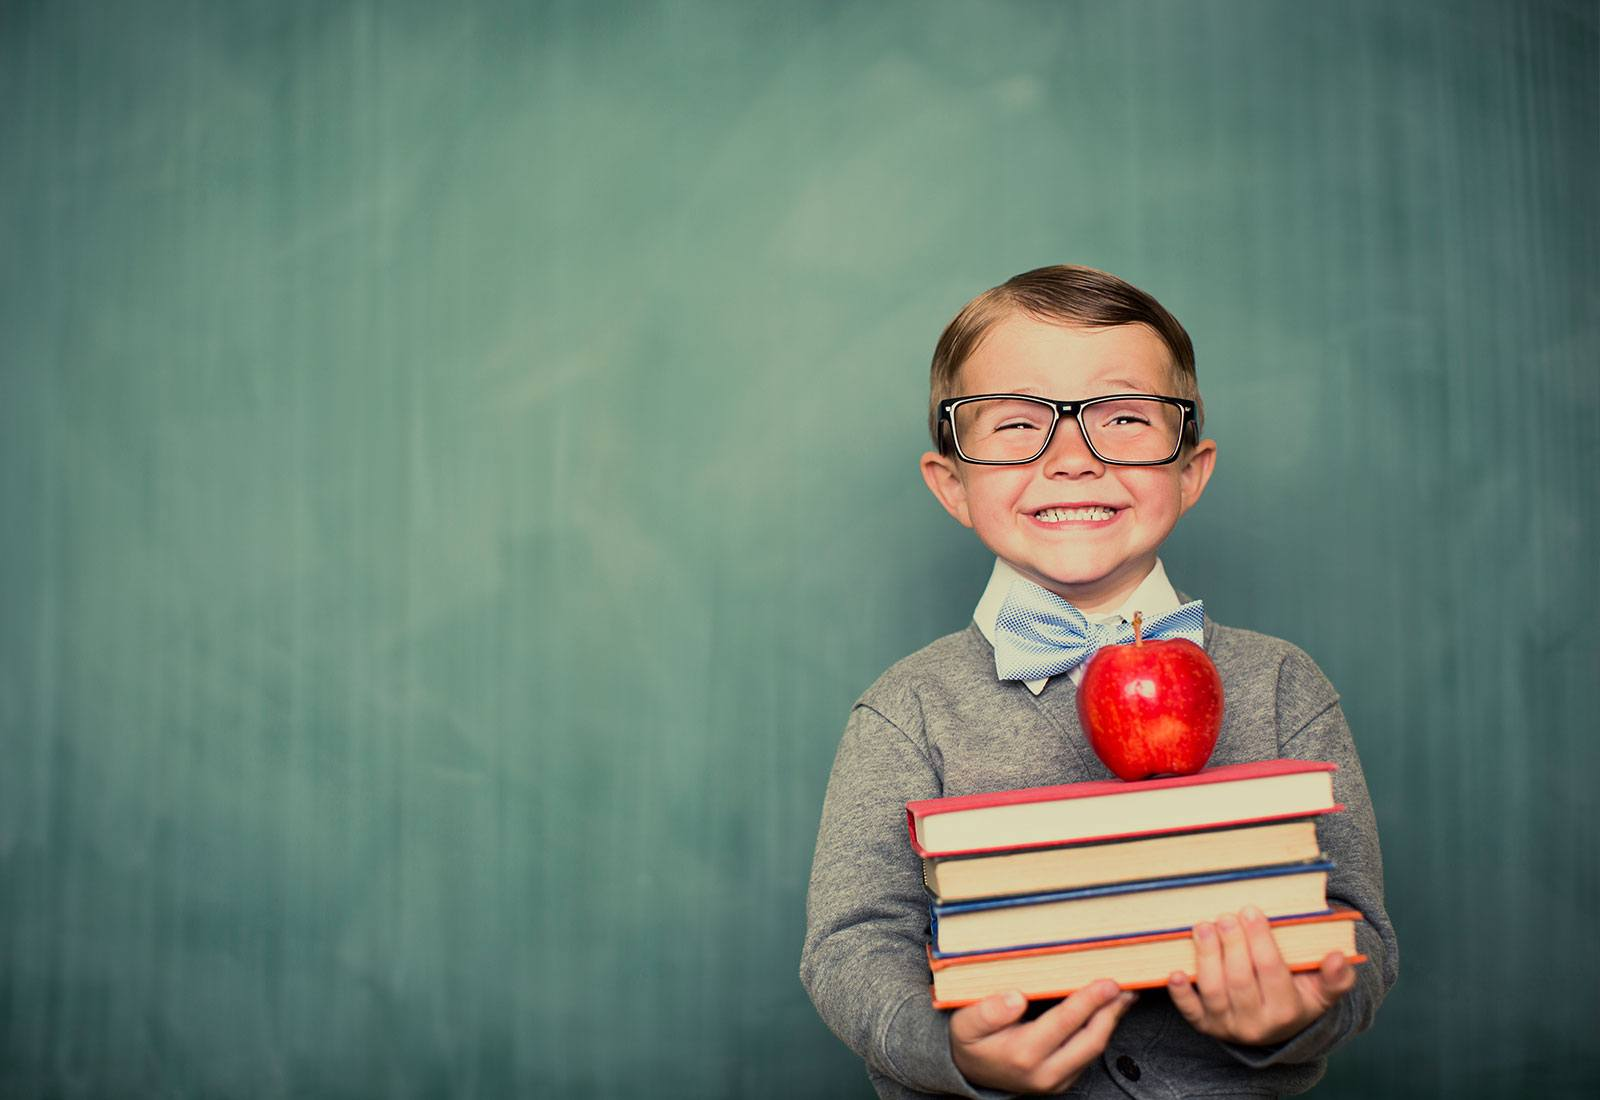 Happy child with glasses holding books and an apple on top